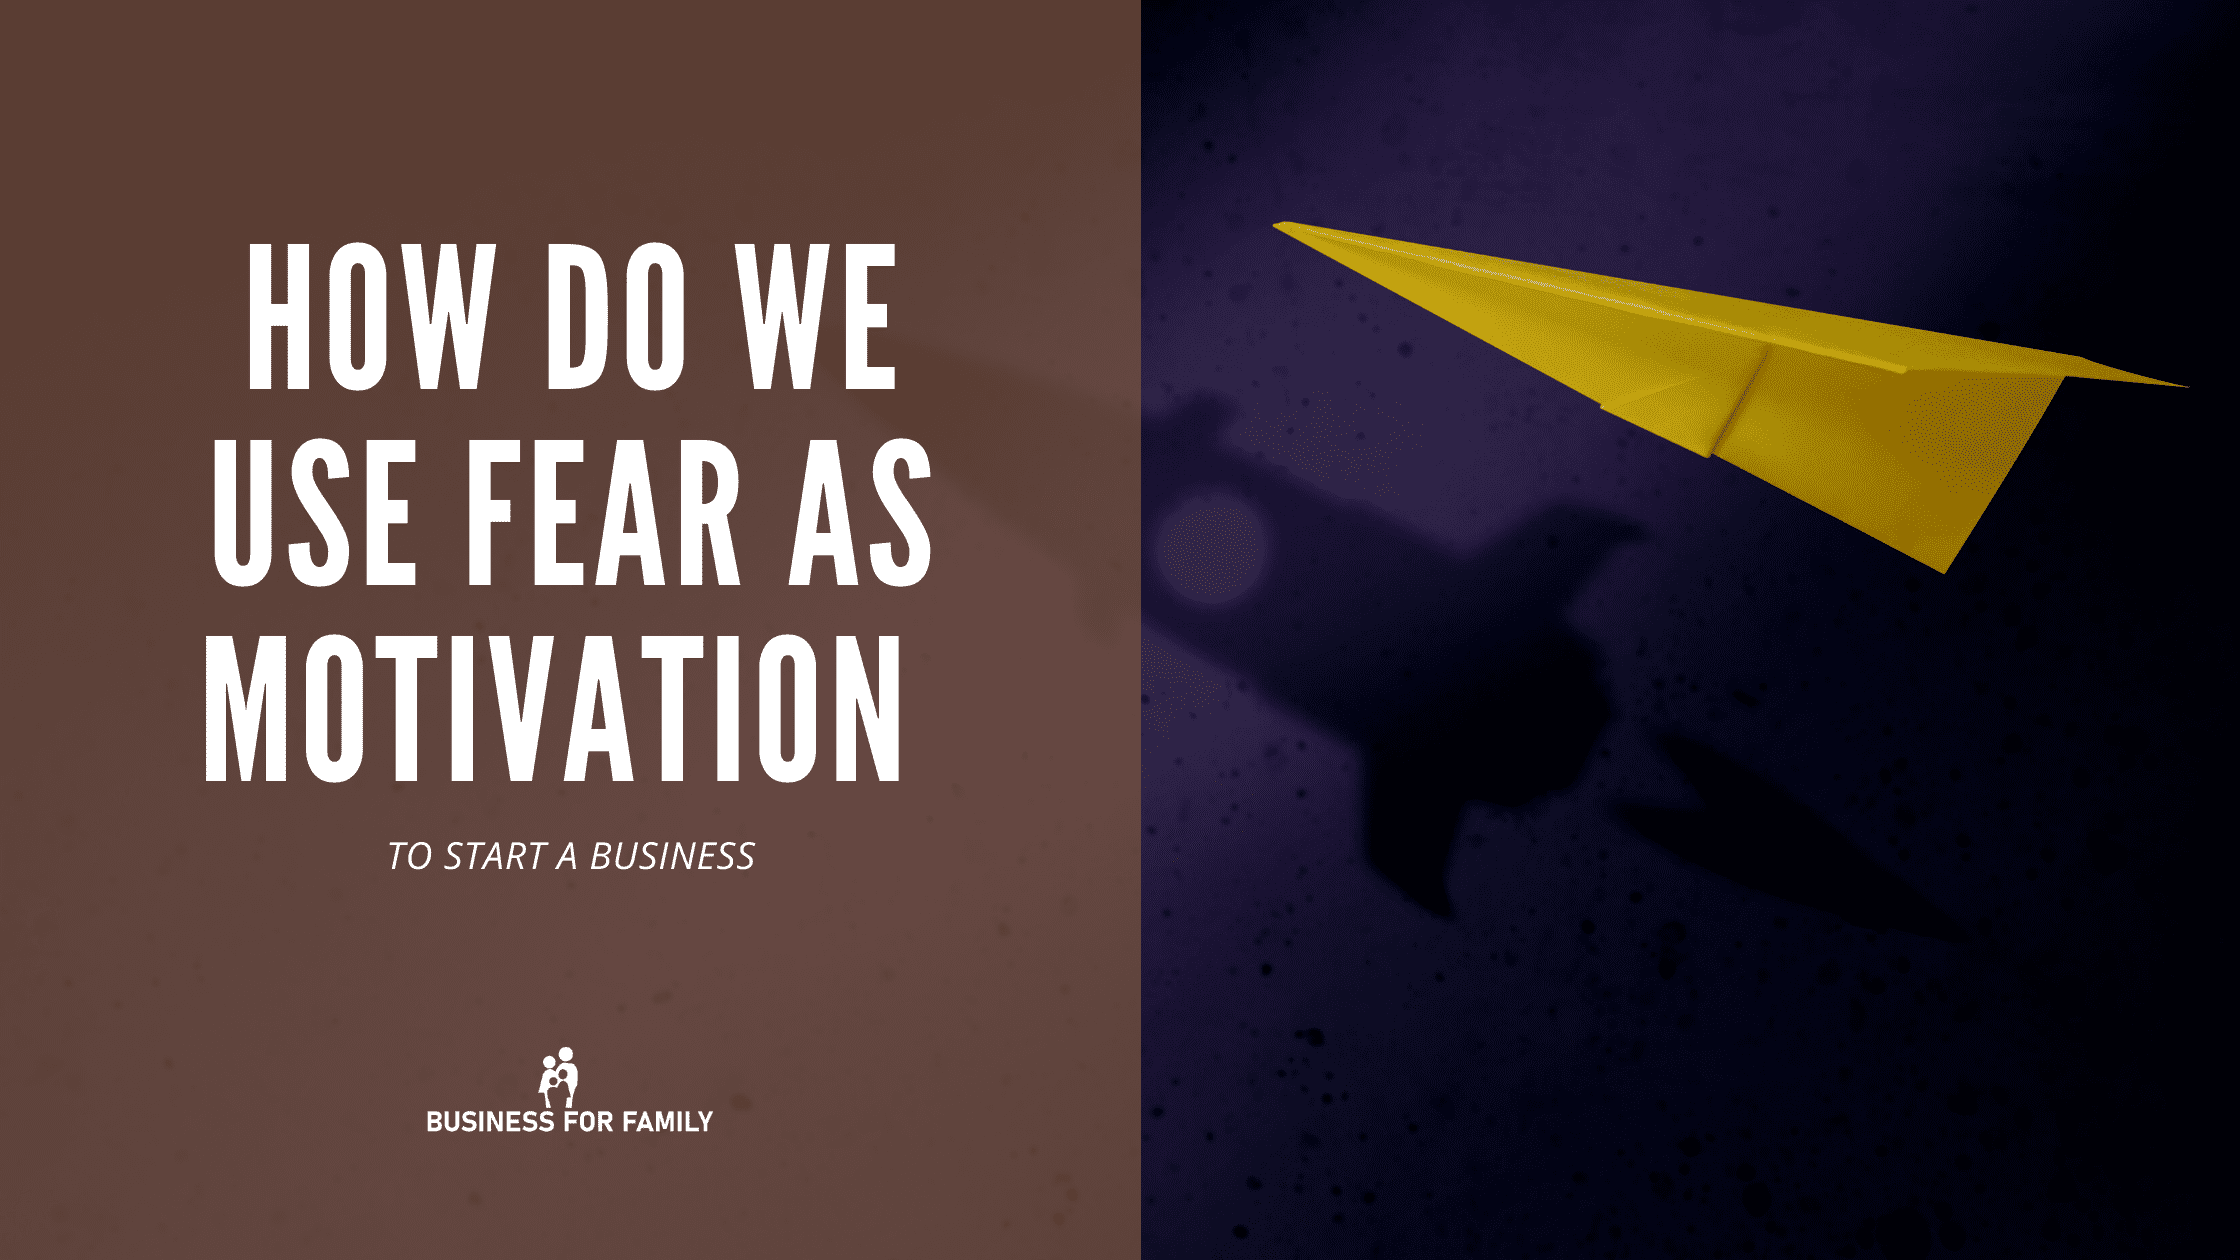 How do we use fear as motivation to start a business